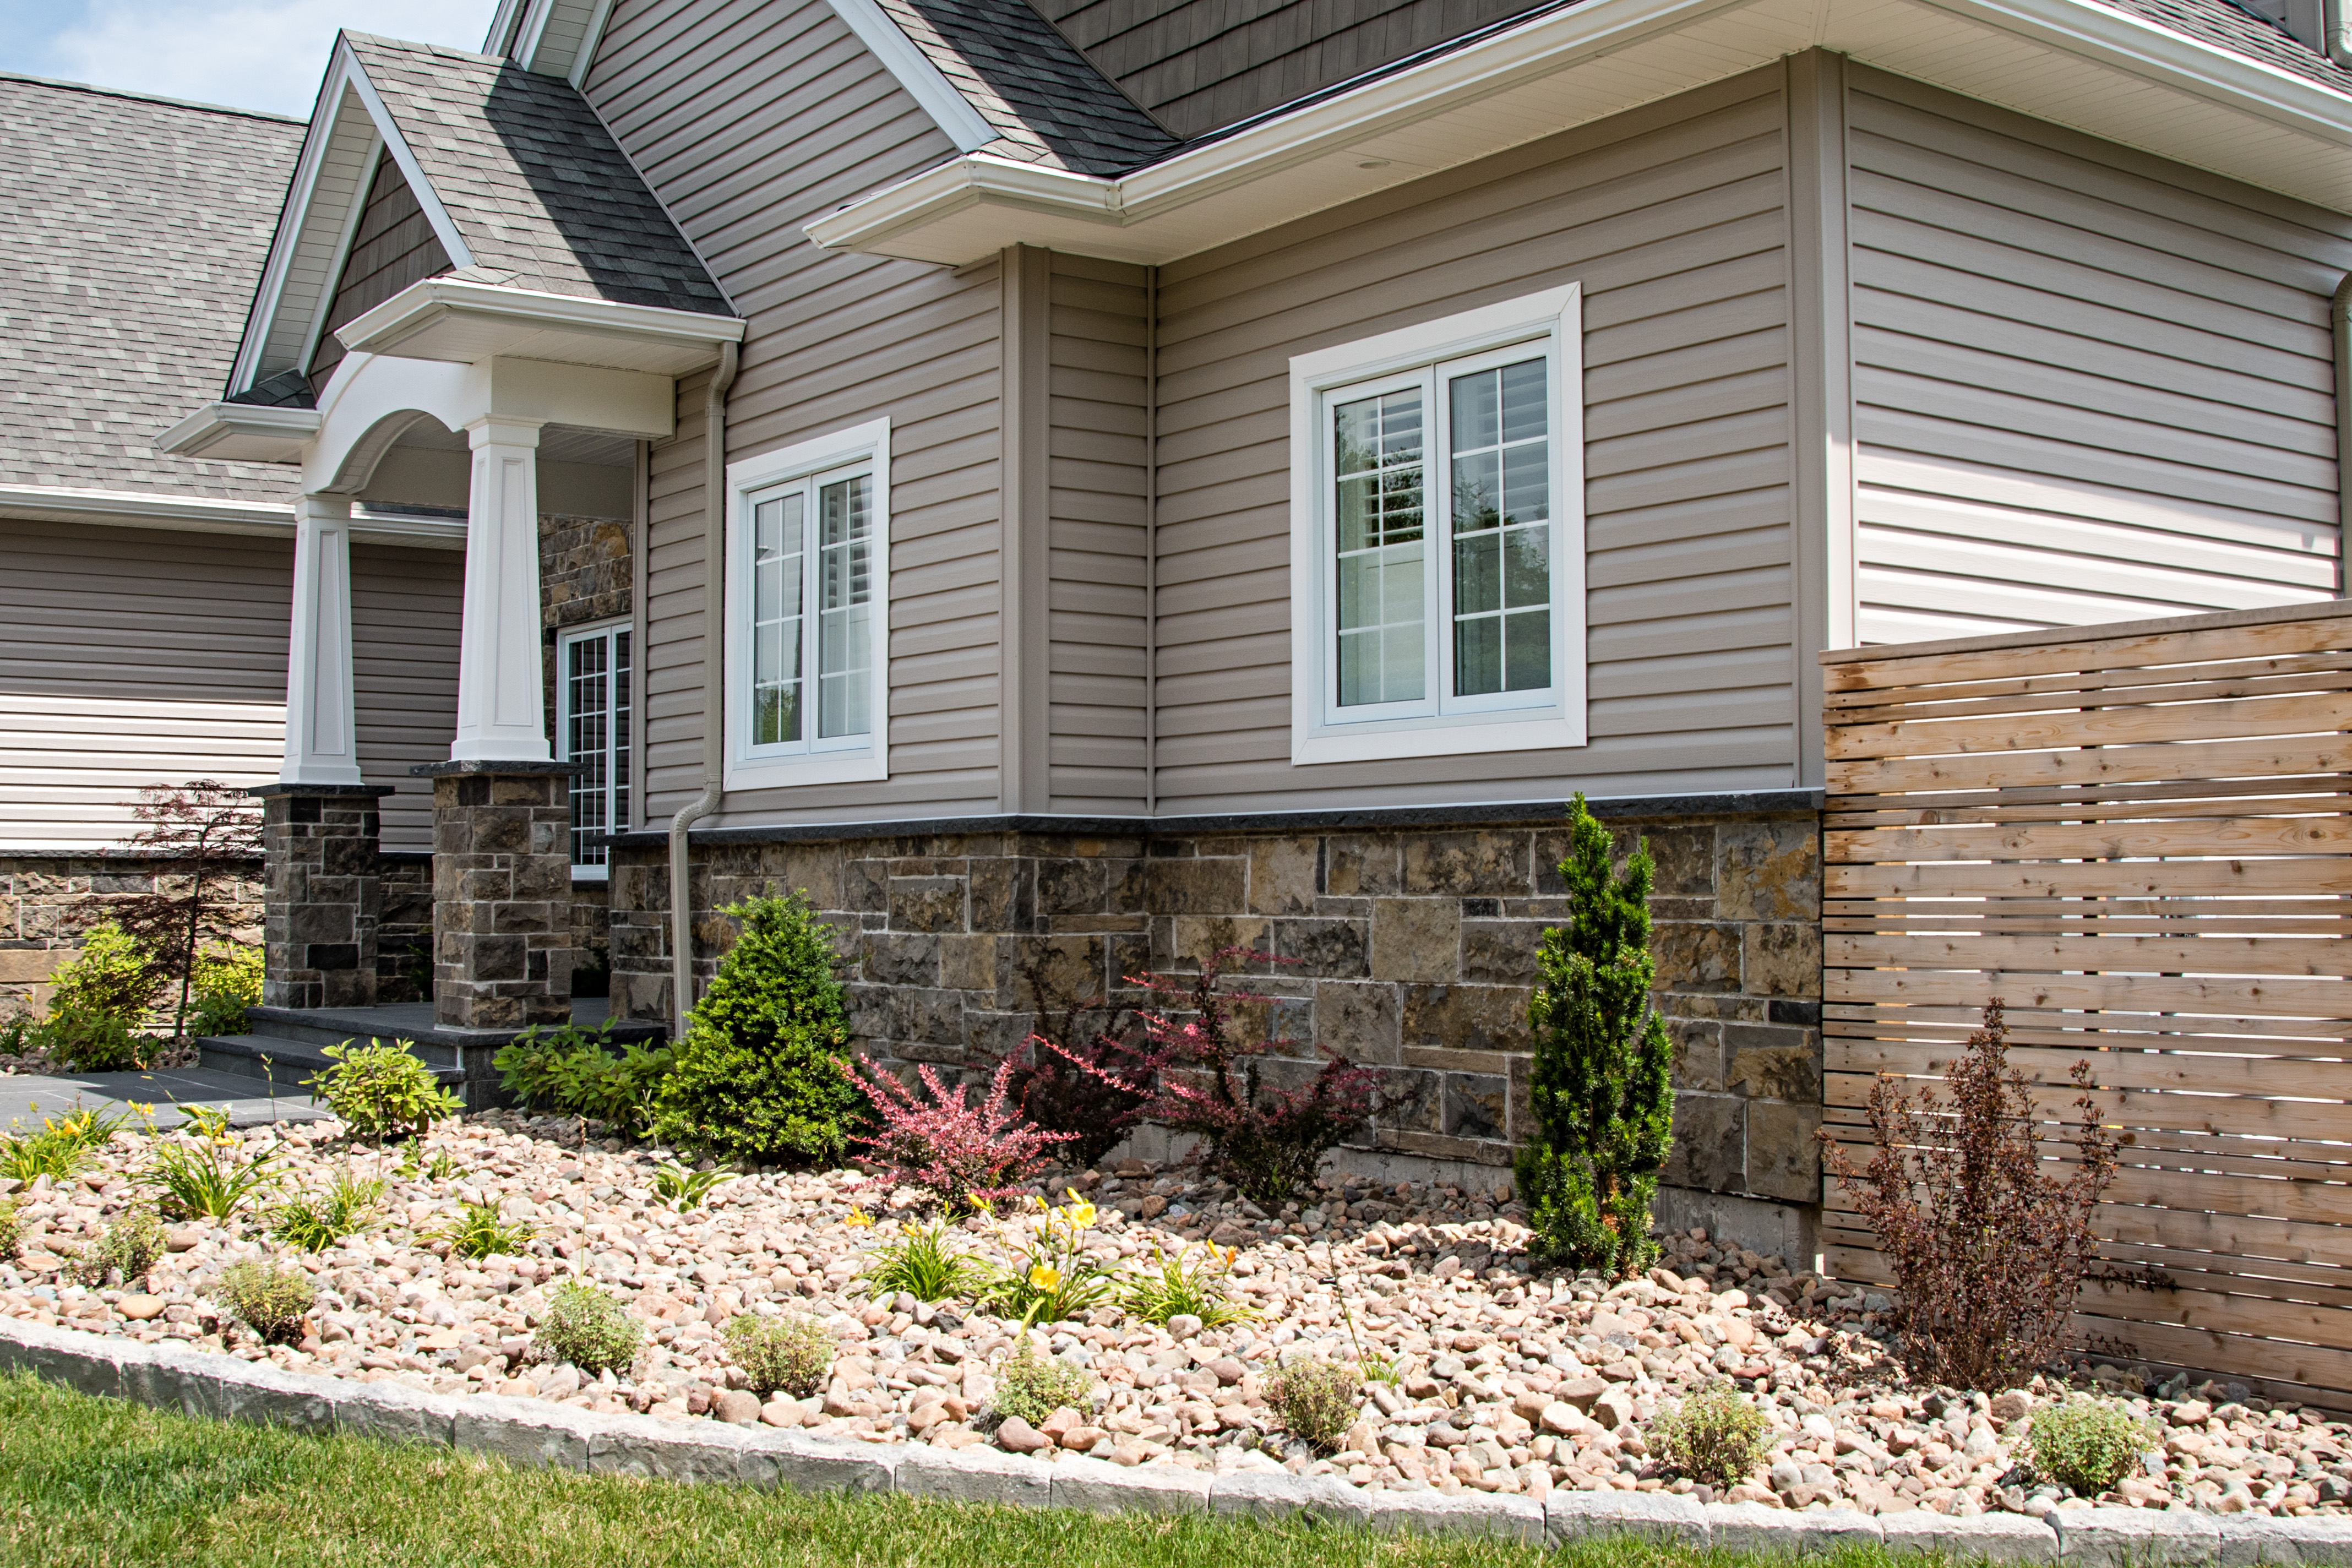 The Importance Of Ensuring Your Siding Is Installed